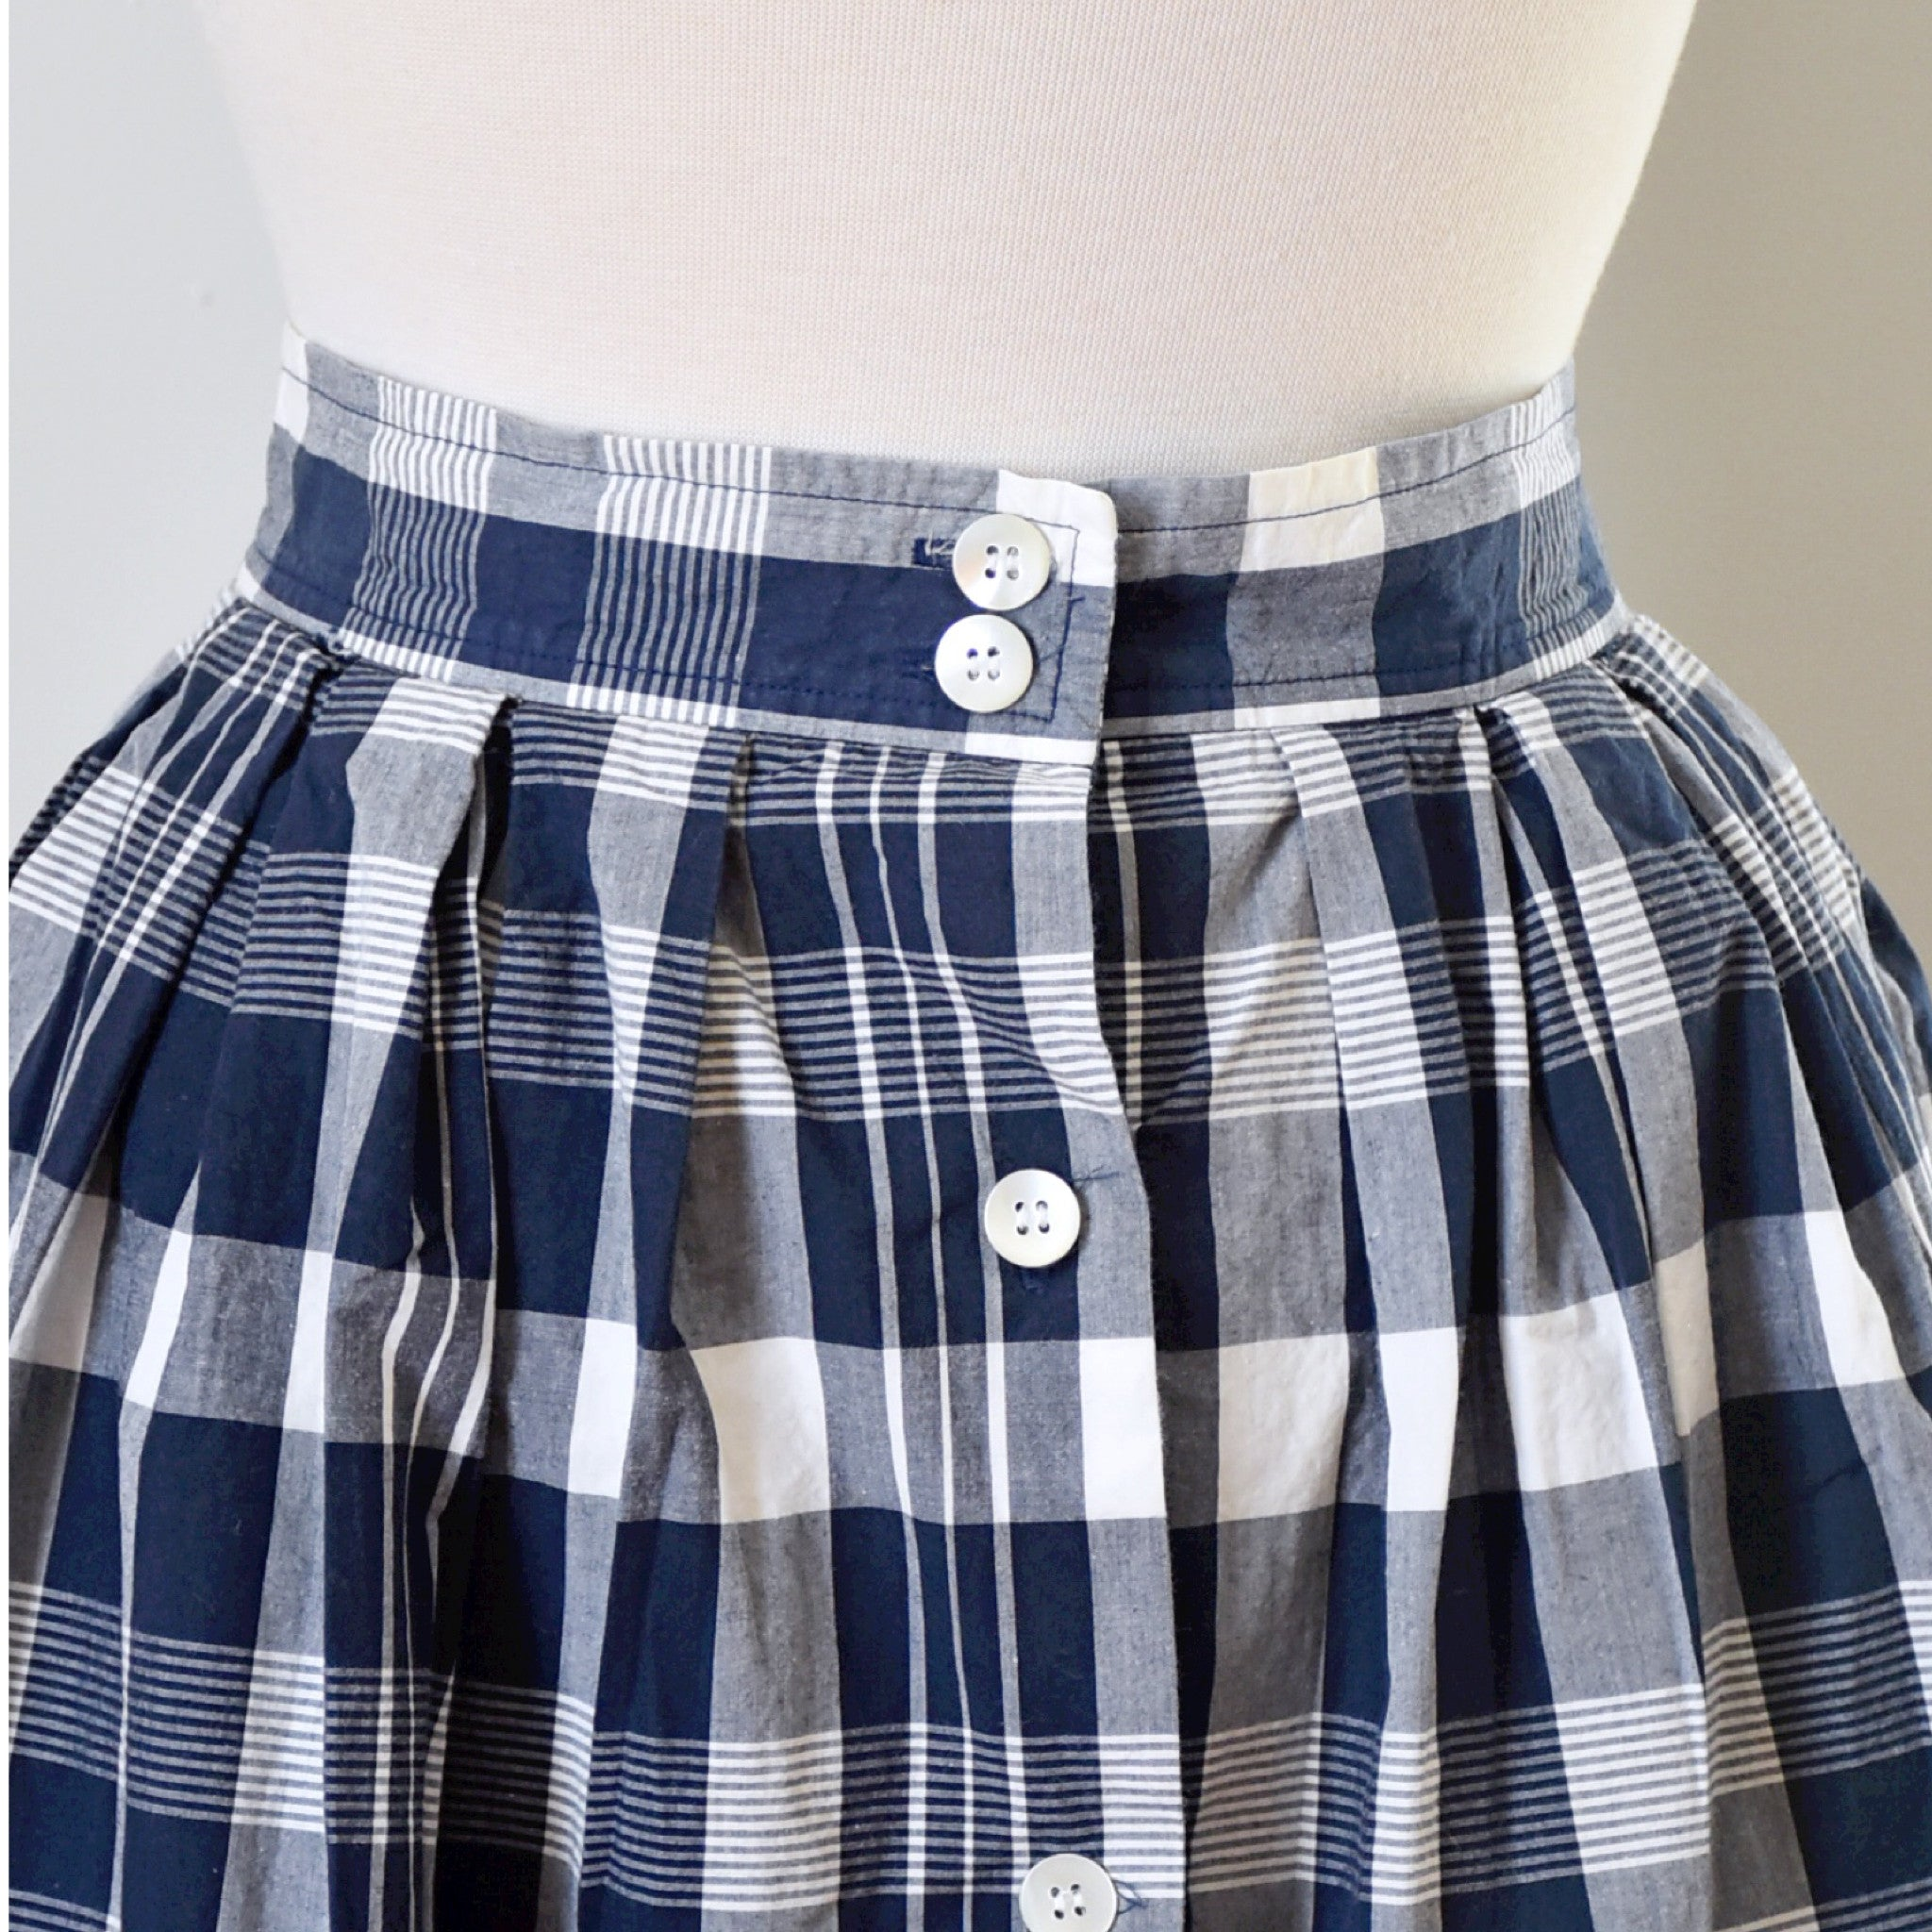 SOLD // 80s Vintage Nautical Plaid Midi Skirt